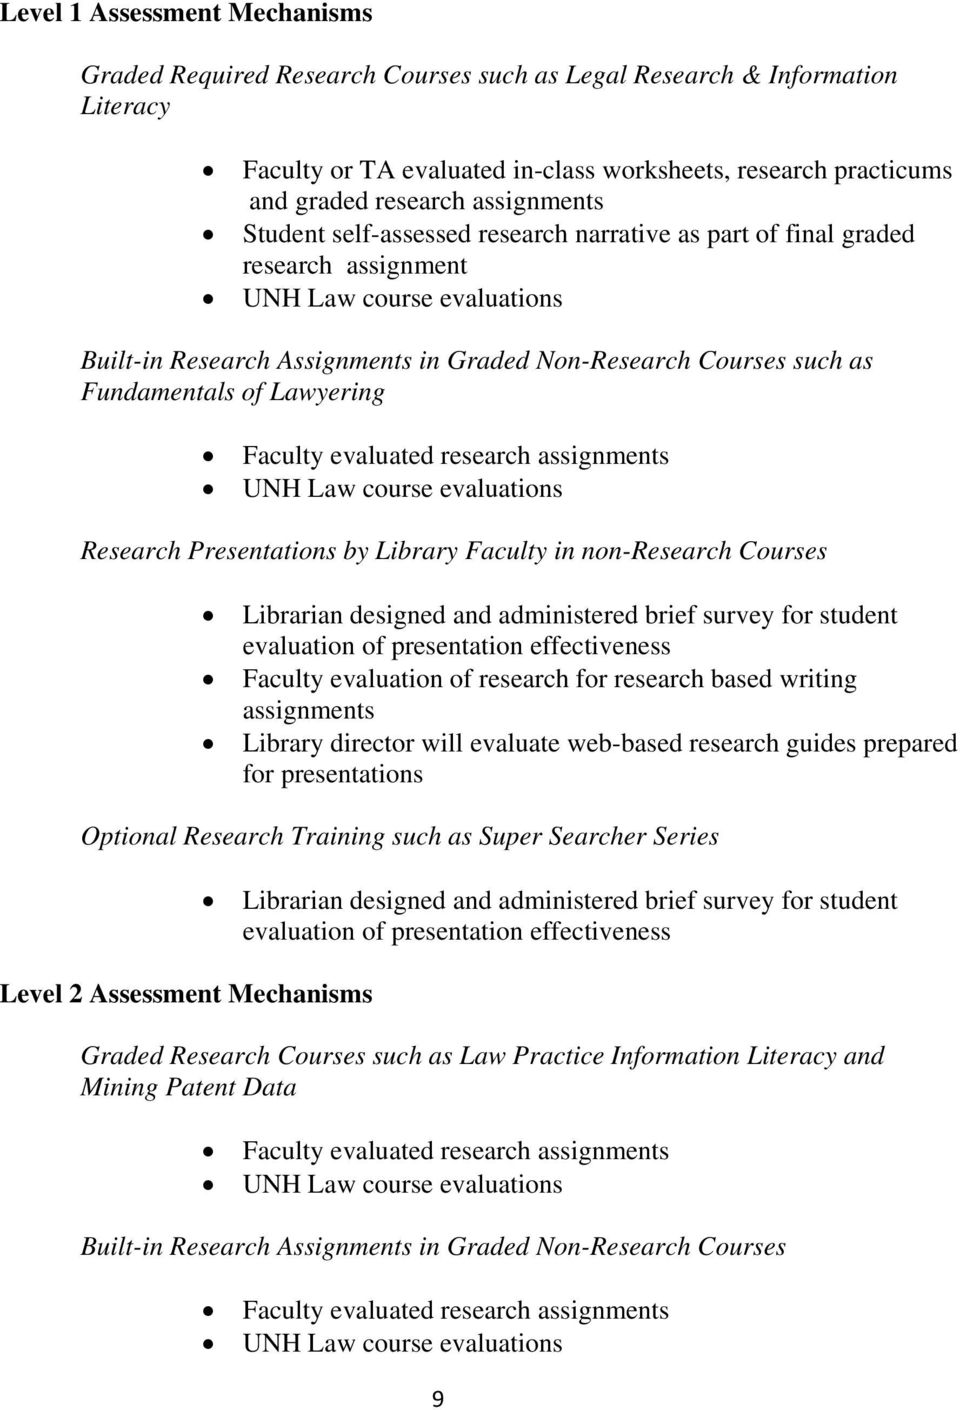 Research Presentations by Library Faculty in non-research Courses Faculty evaluation of research for research based writing assignments Library director will evaluate web-based research guides